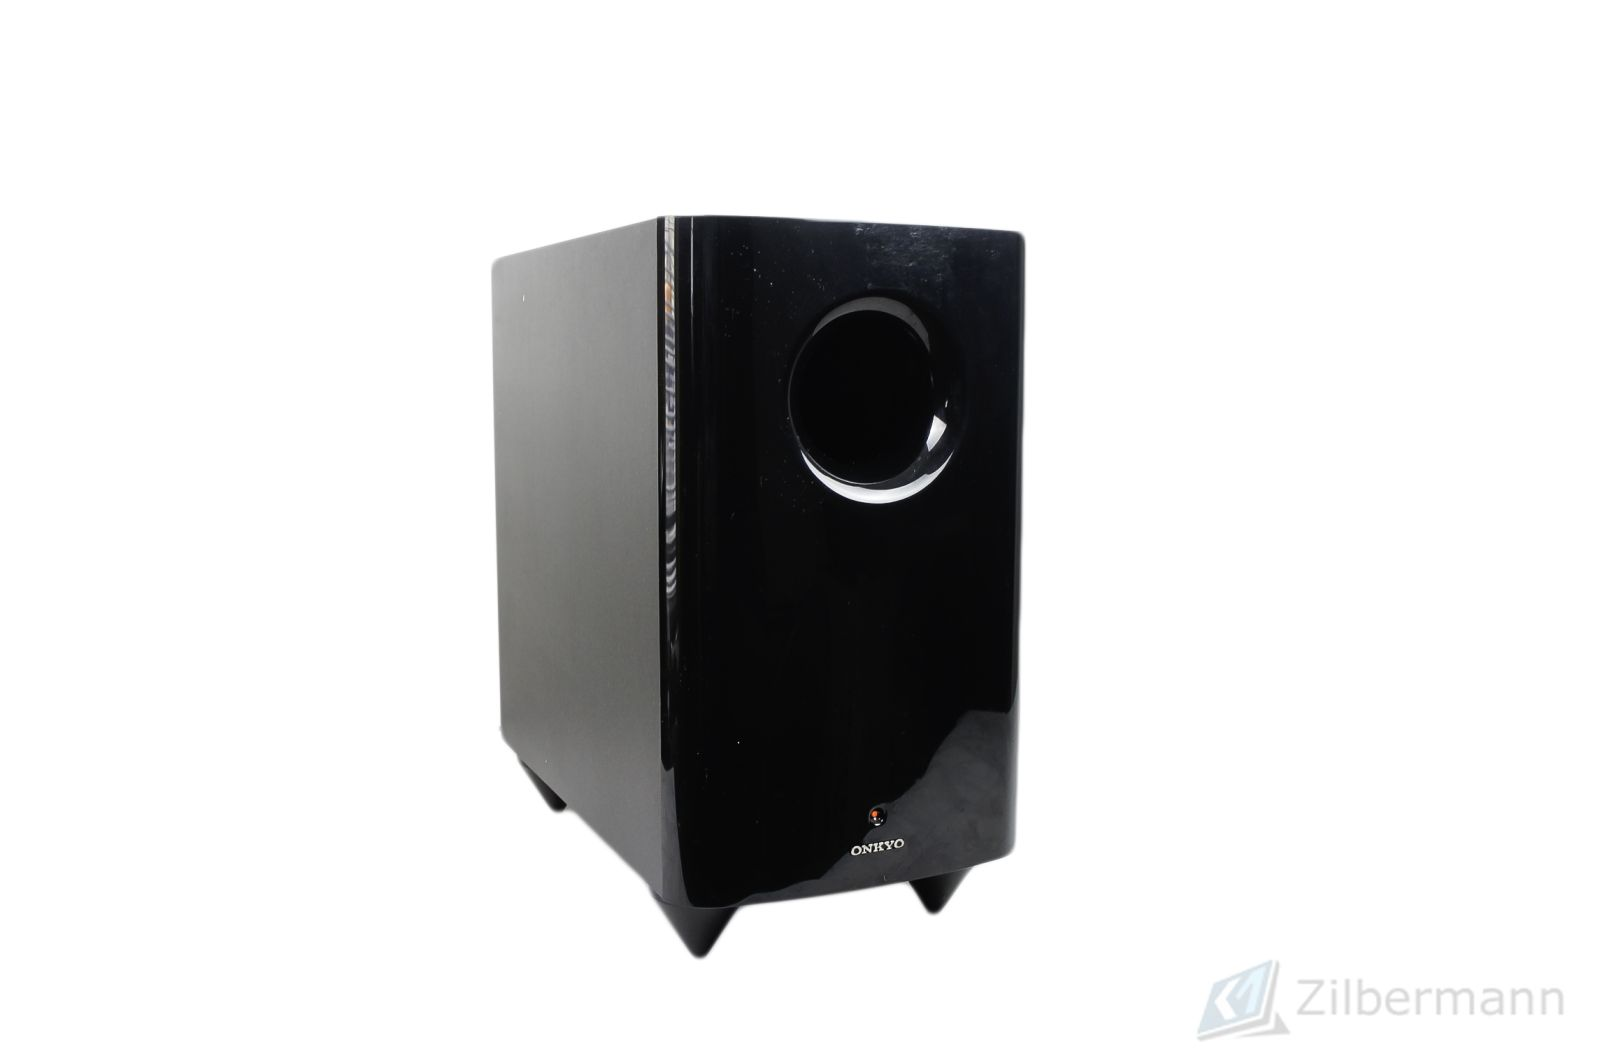 Onkyo_SKW-501E_Subwoofer_Powered